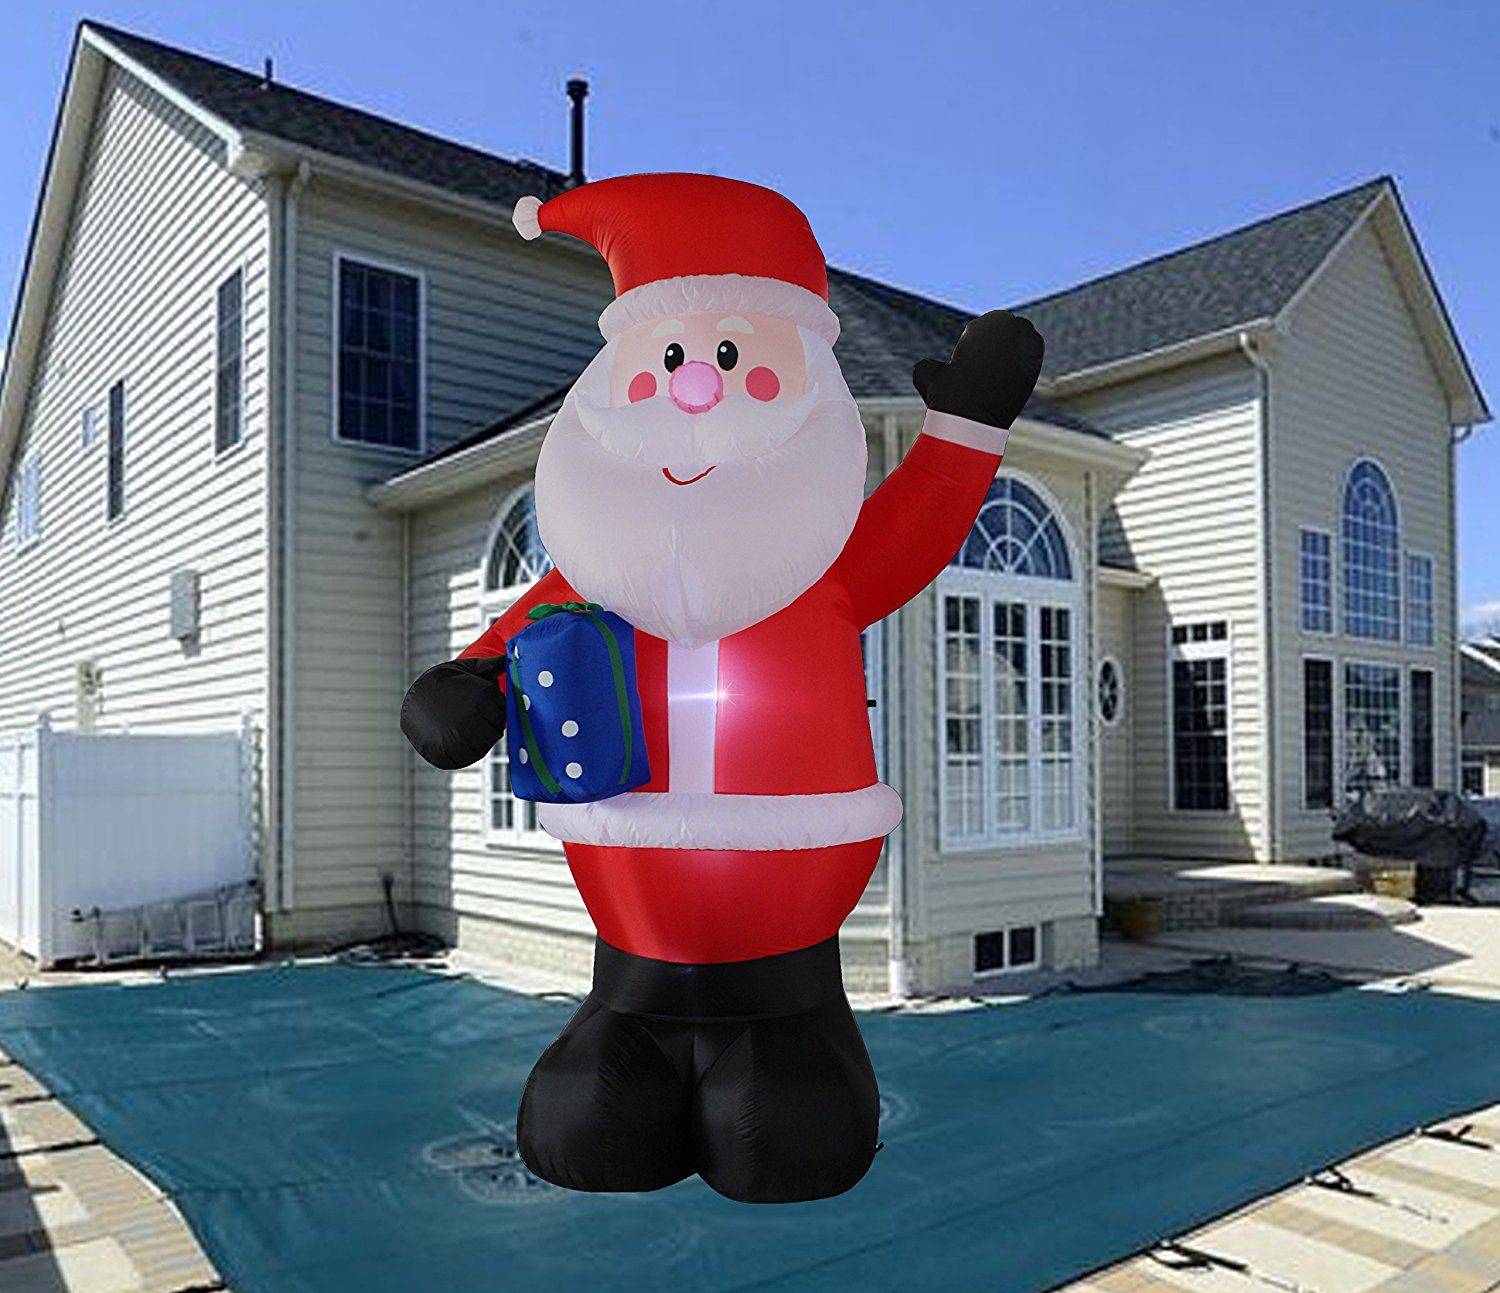 The 15 Most Hated Christmas Decoration Of All Time